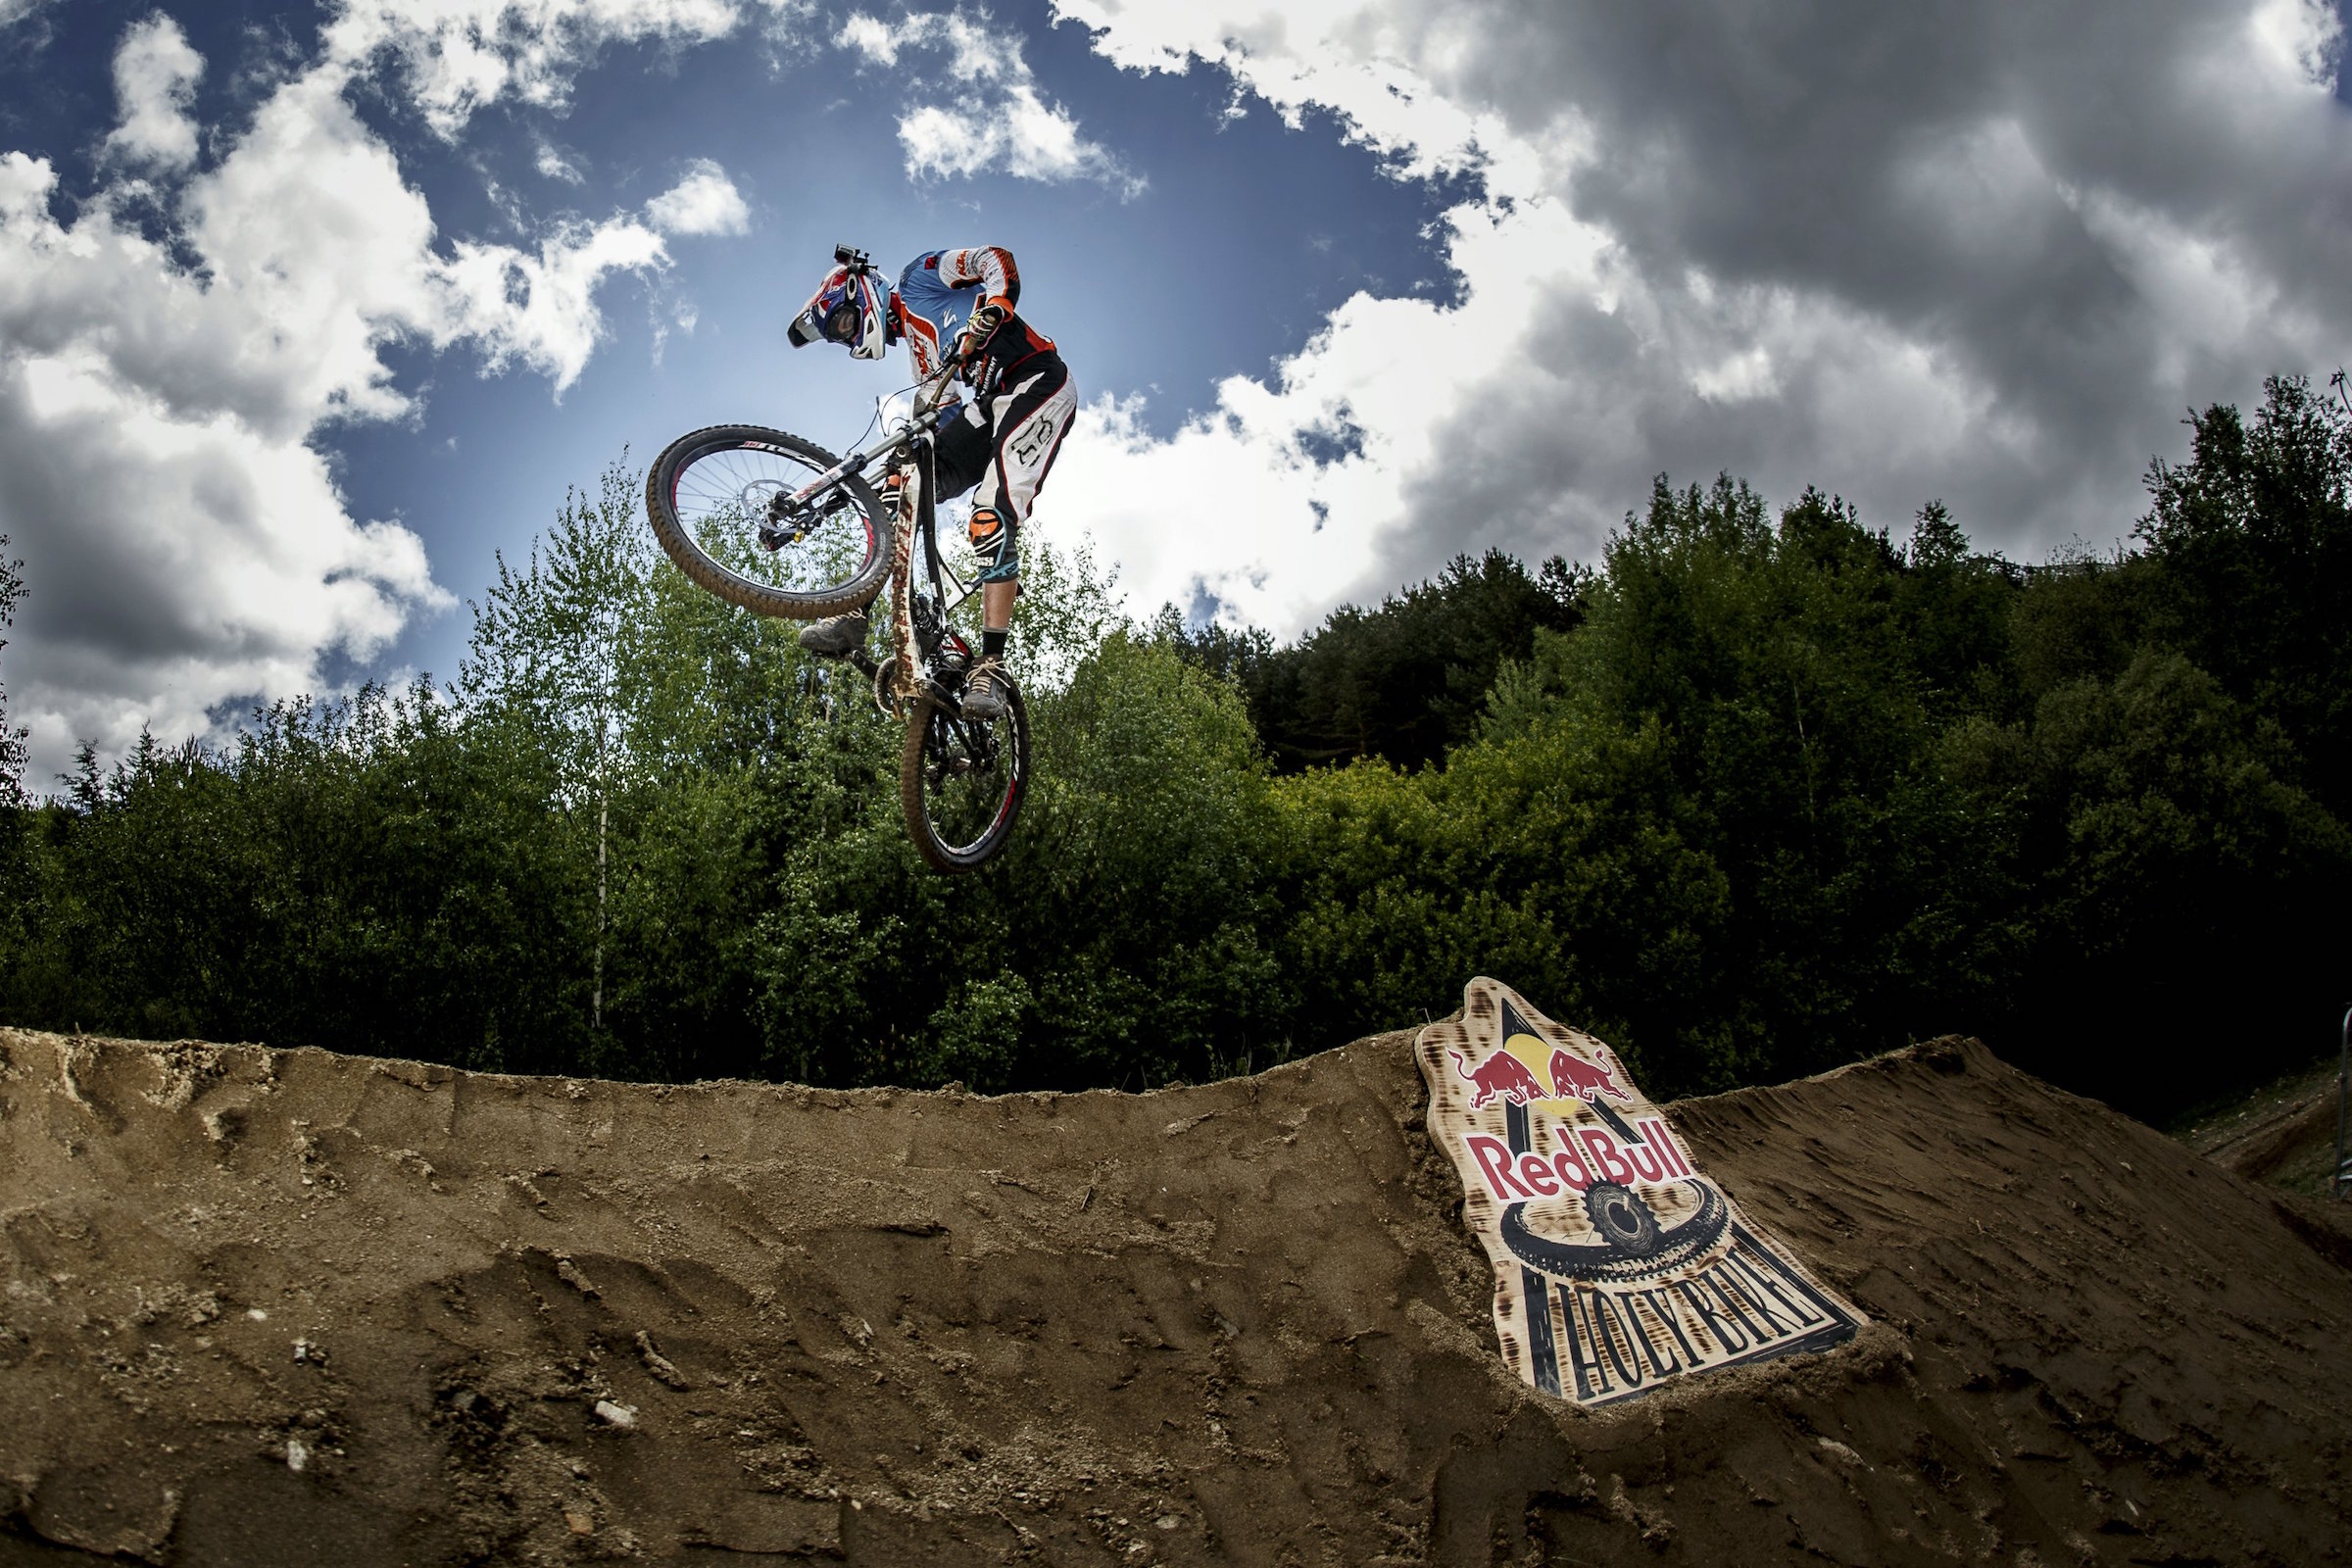 """Competitor performs at the Red Bull Holy Bike at """"La Pinilla Bike Park"""" in Segovia, Spain on May 24th, 2014 // Aitor Matauco / Red Bull Content Pool // P-20140526-00069 // Usage for editorial use only // Please go to www.redbullcontentpool.com for further information. //"""